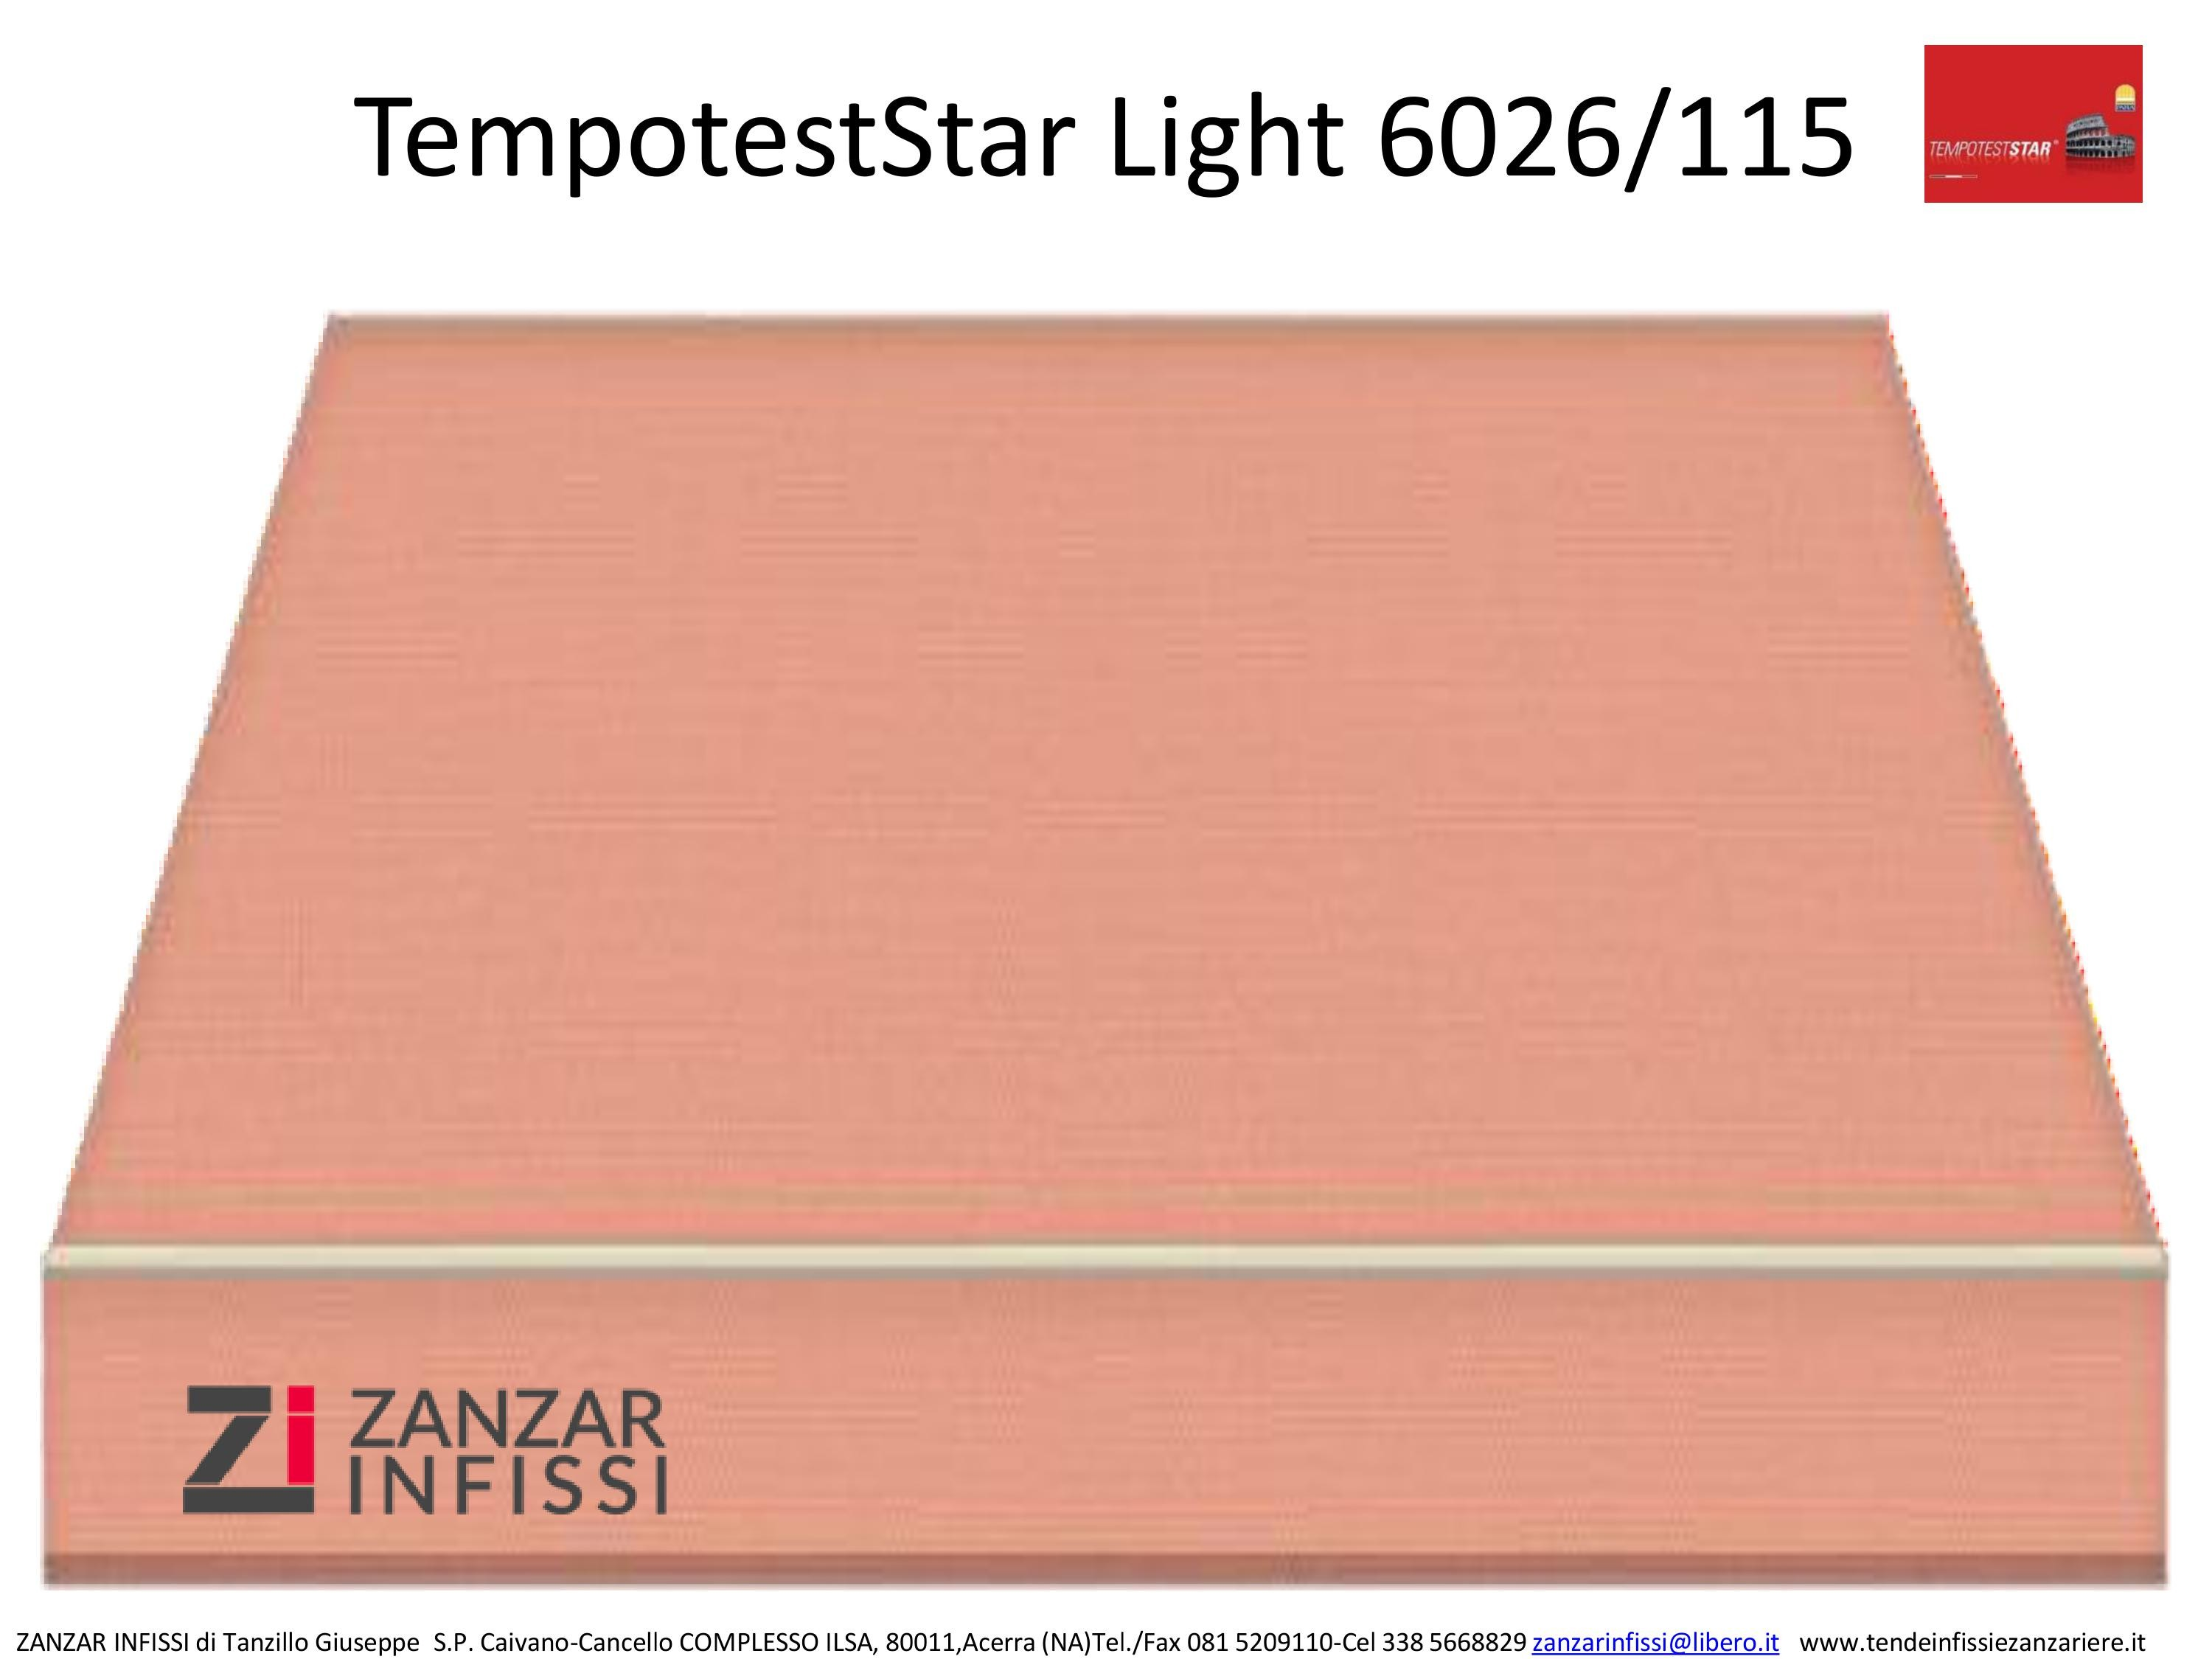 Tempotest star light 6026/115